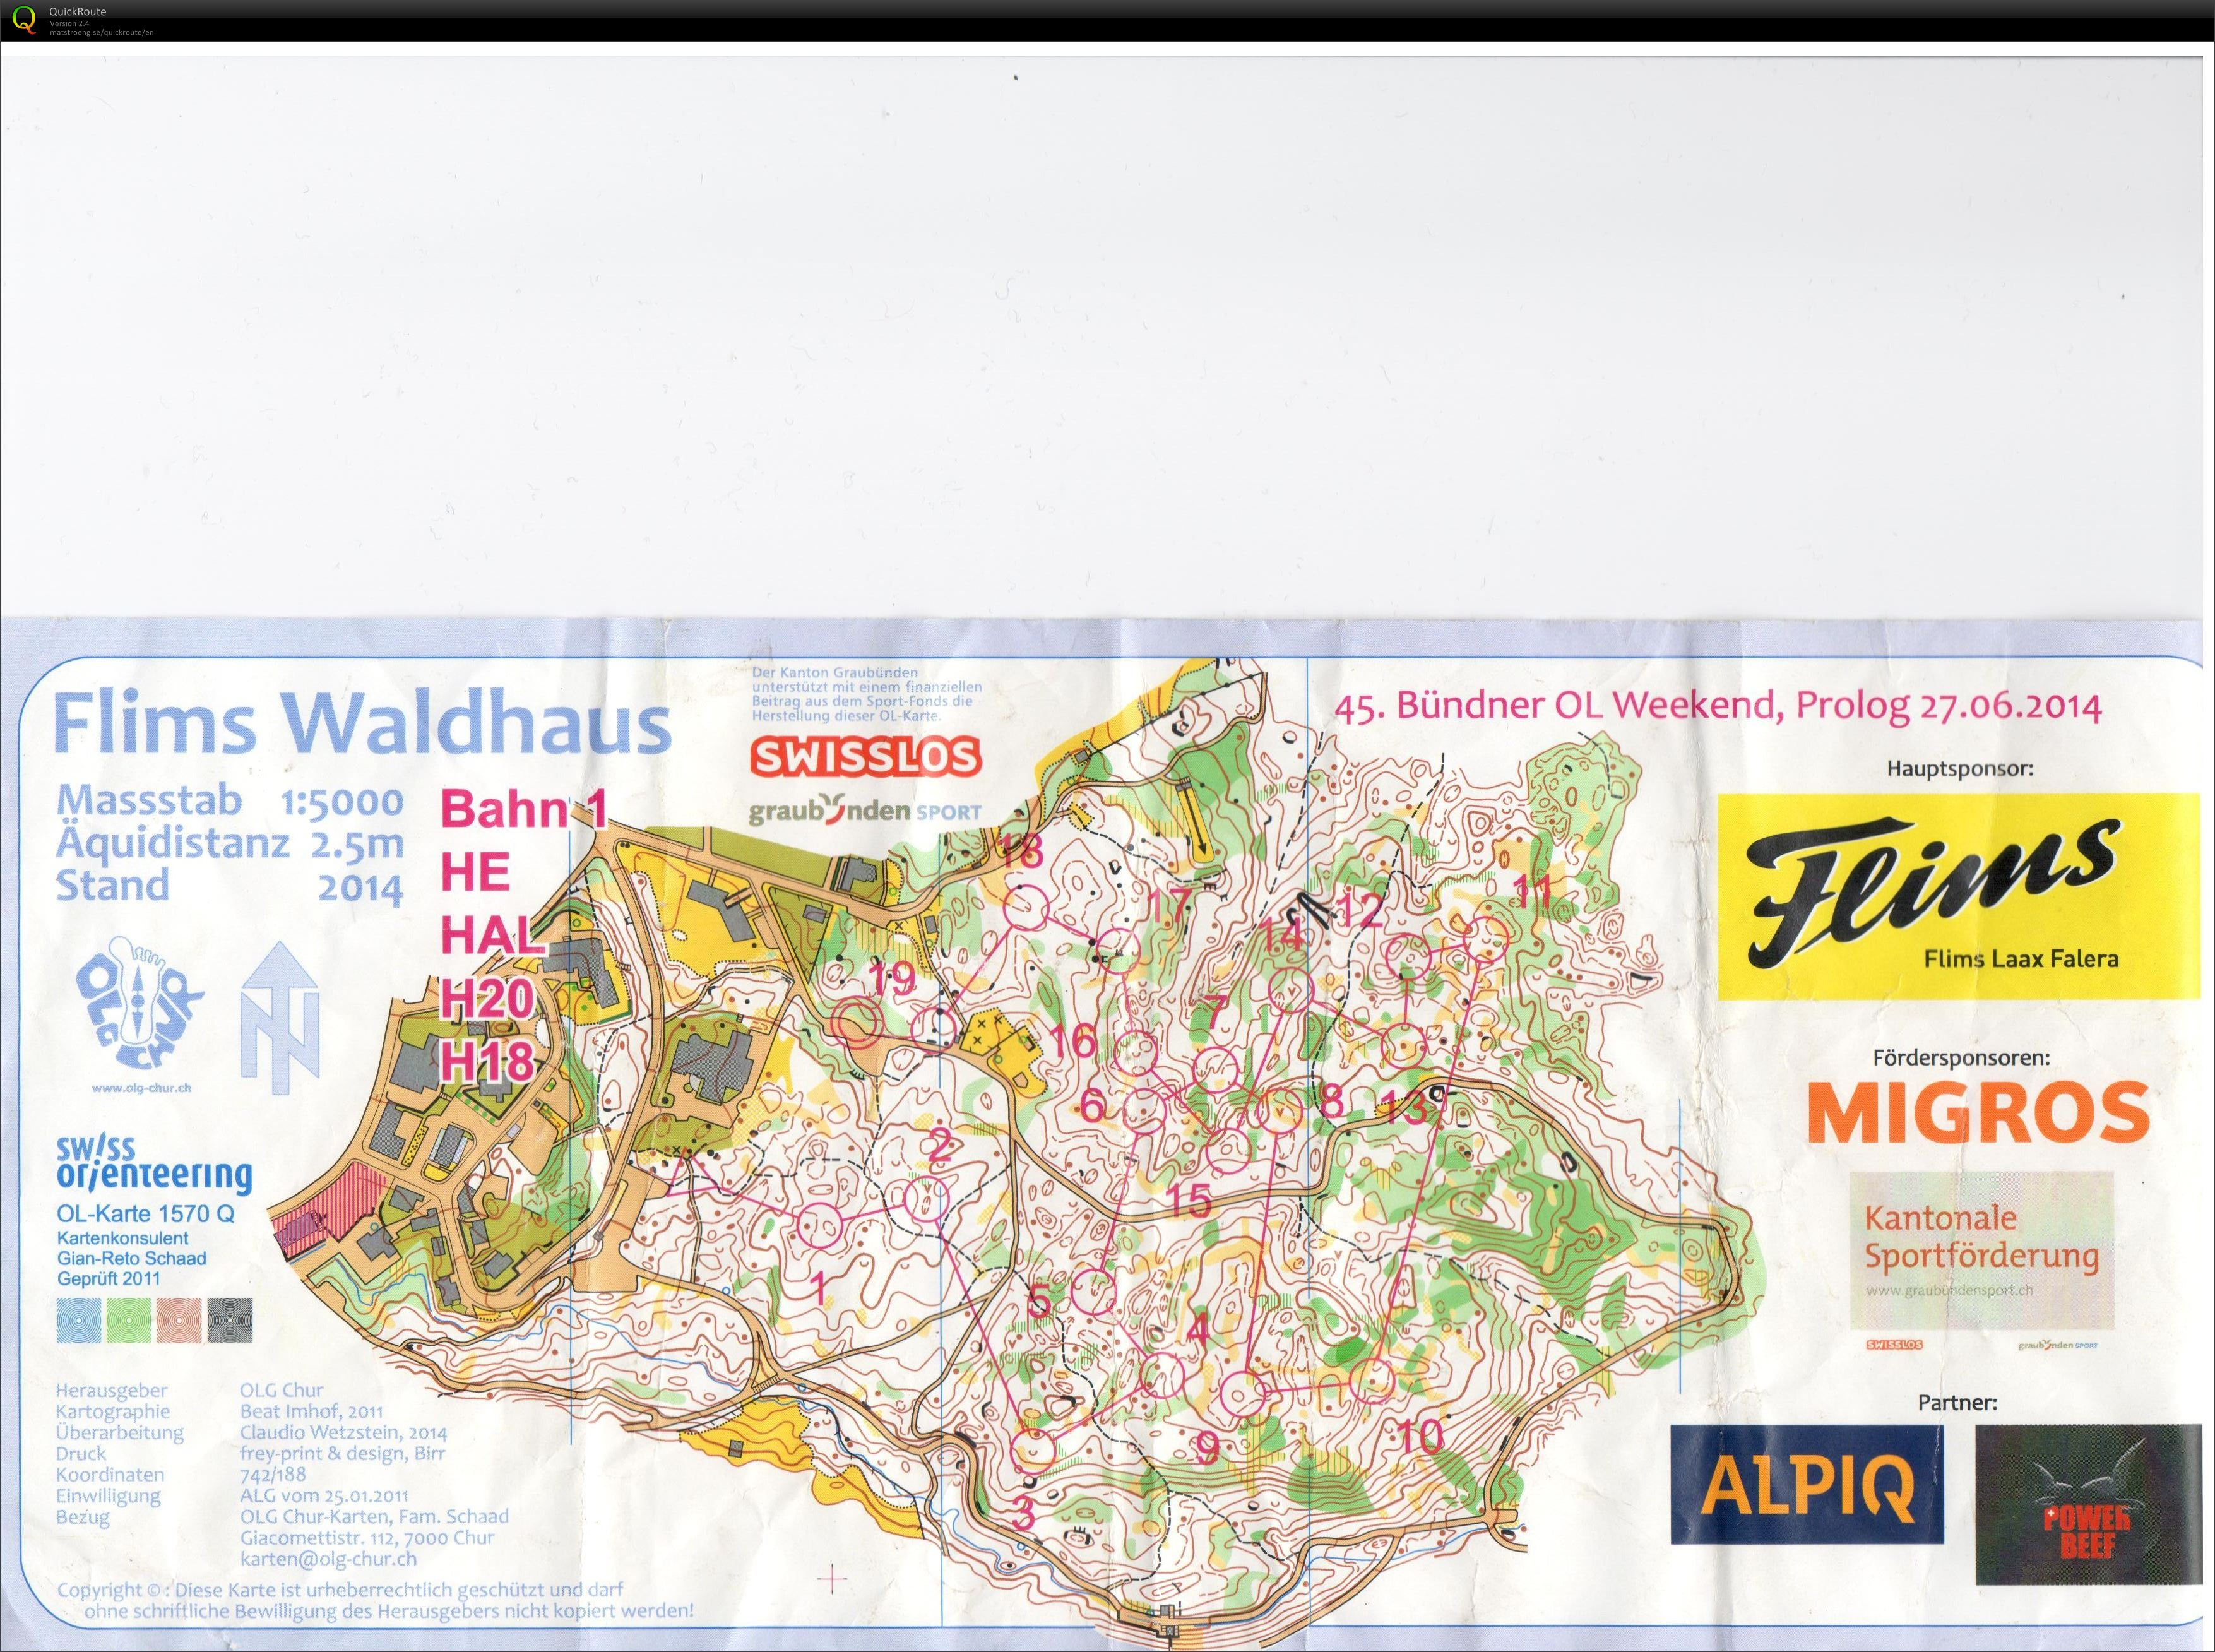 Prolog - June 27th 2014 - Orienteering Map from Térence Risse